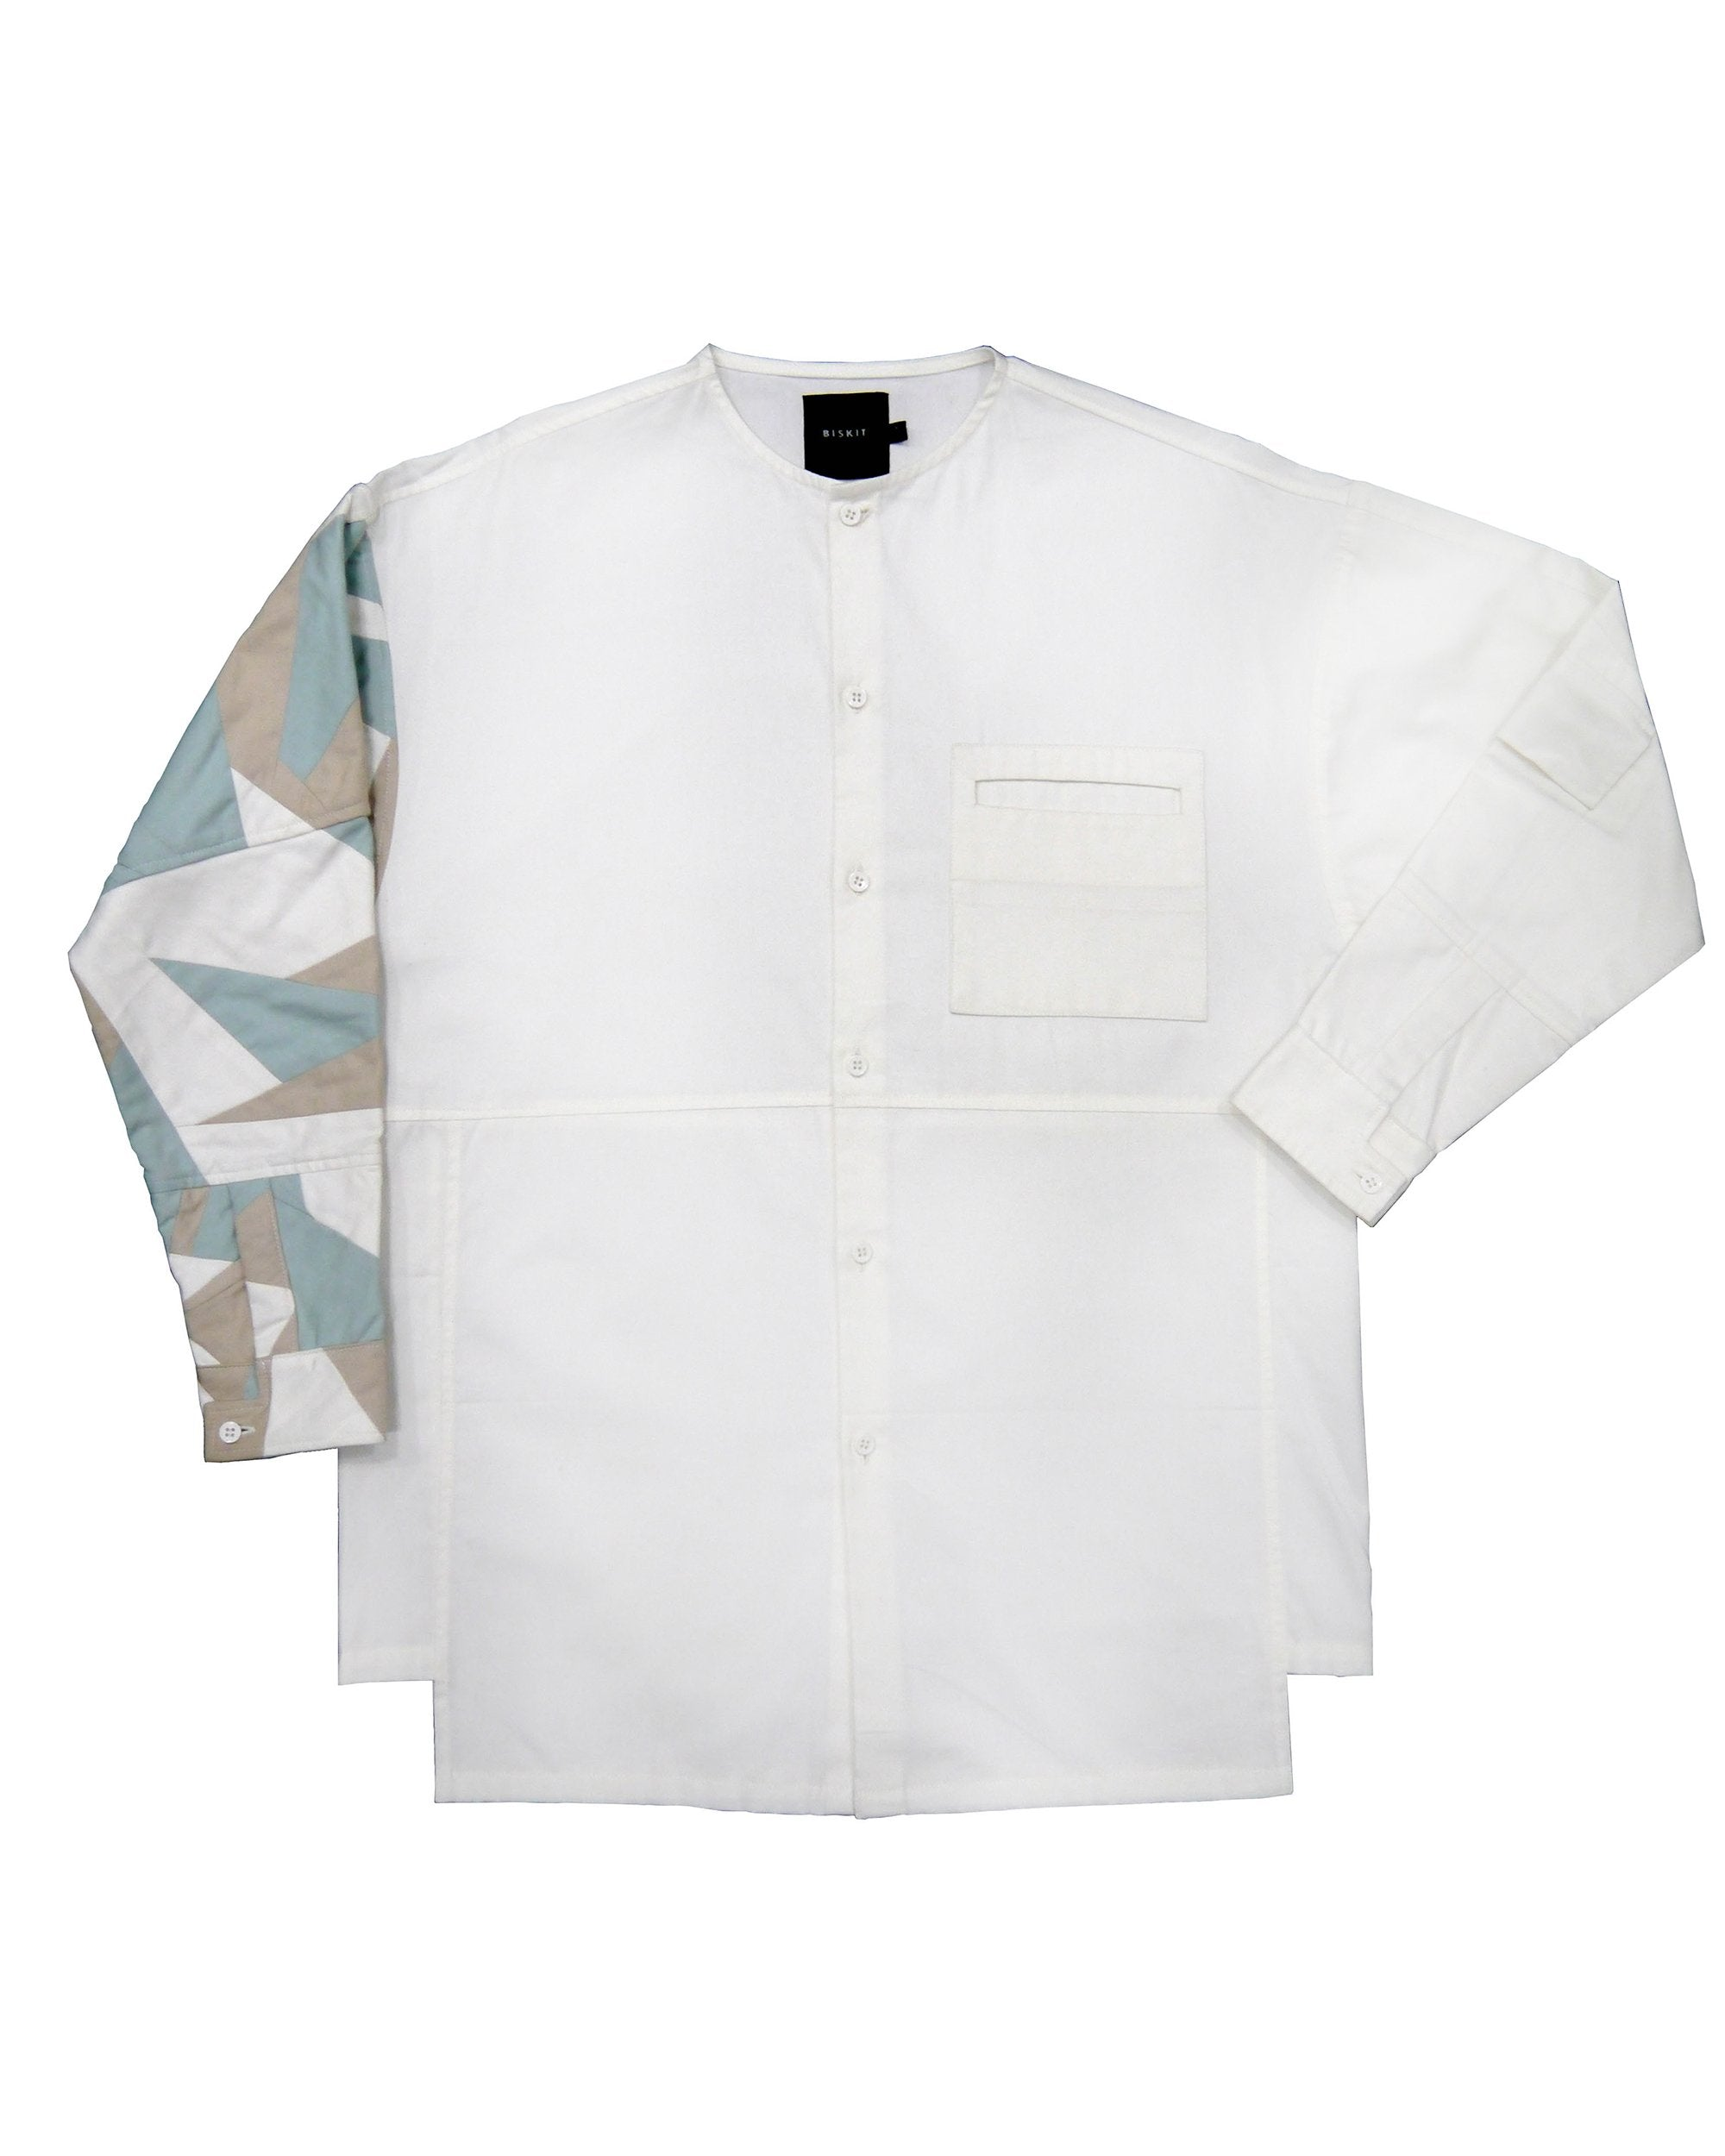 Limited Edition off-White Shirt with Recycled Scrap Sleeve